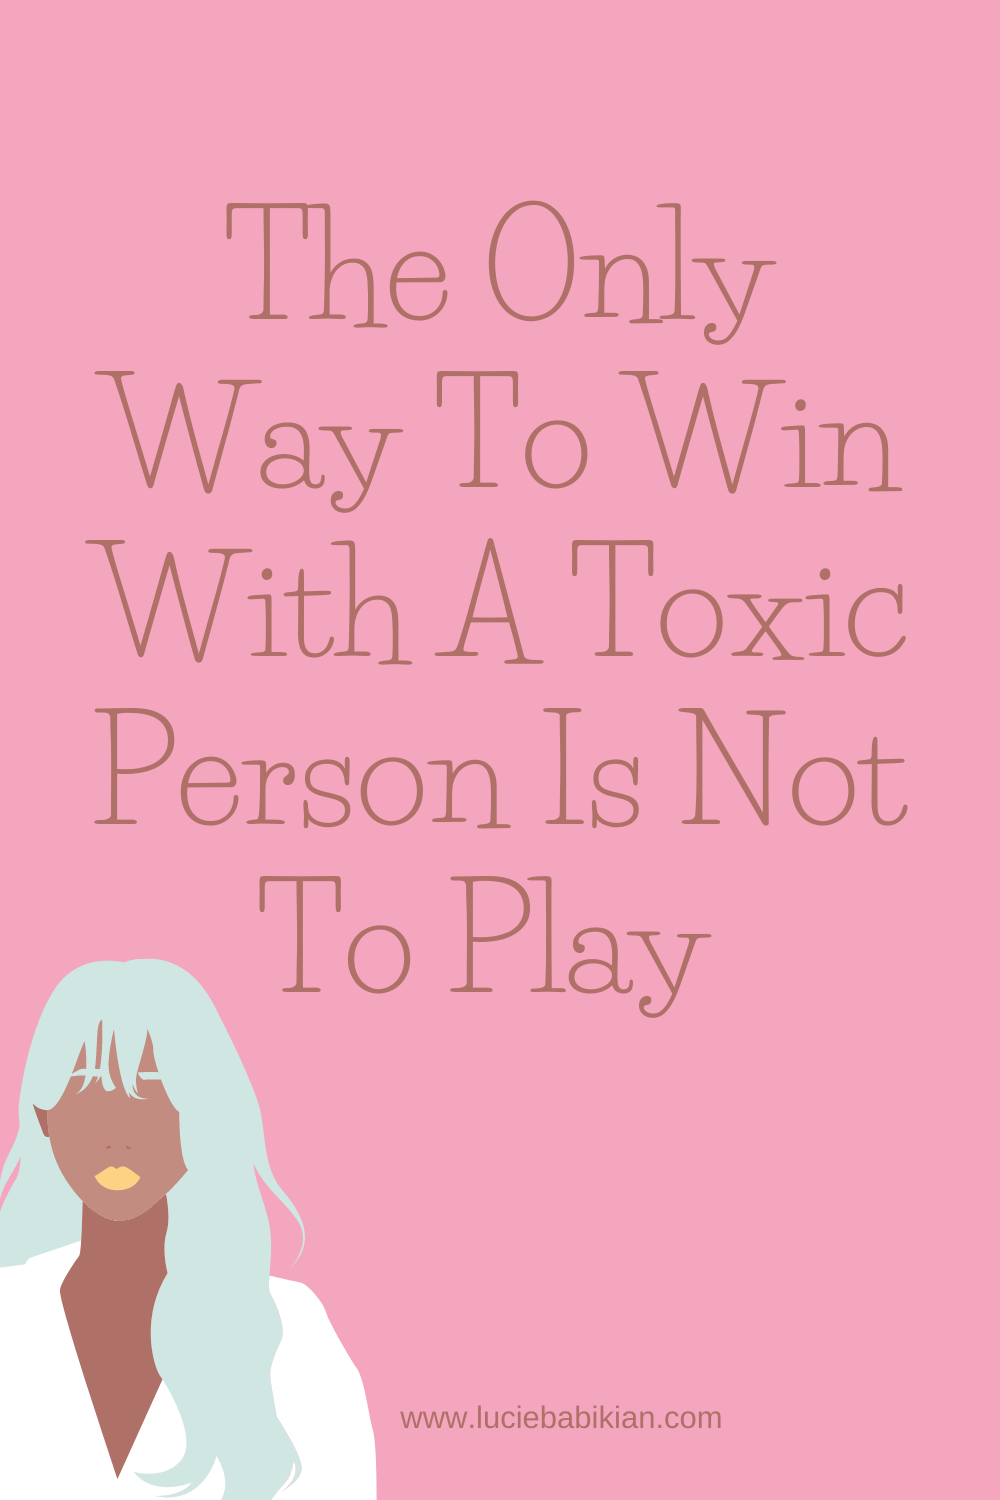 The Only Way To Win With A Toxic Person Is Not To Play